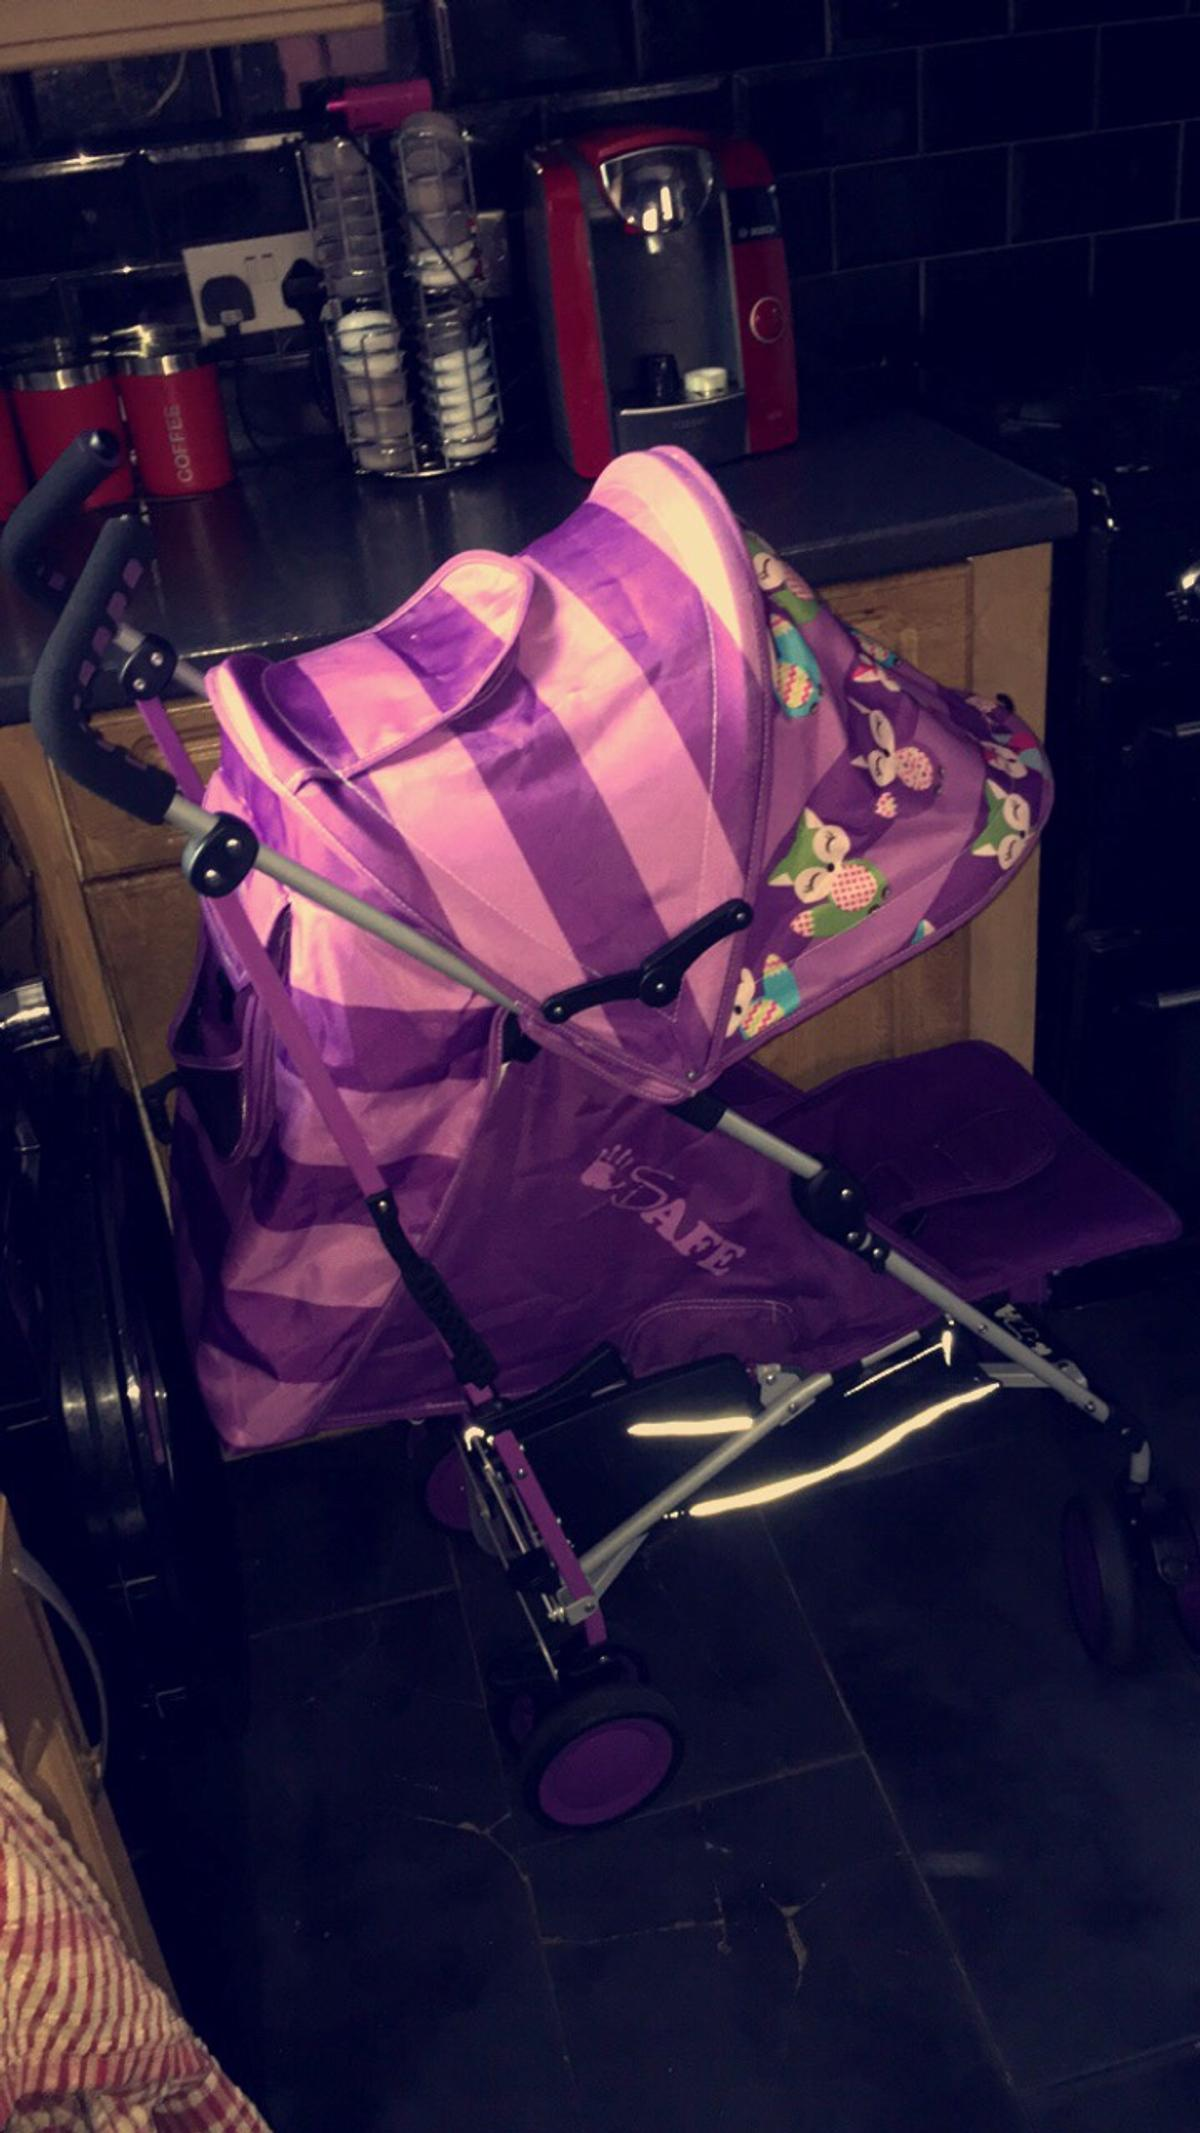 18a1a01a6 Isafe Fox in S30 Sheffield for £50.00 for sale - Shpock